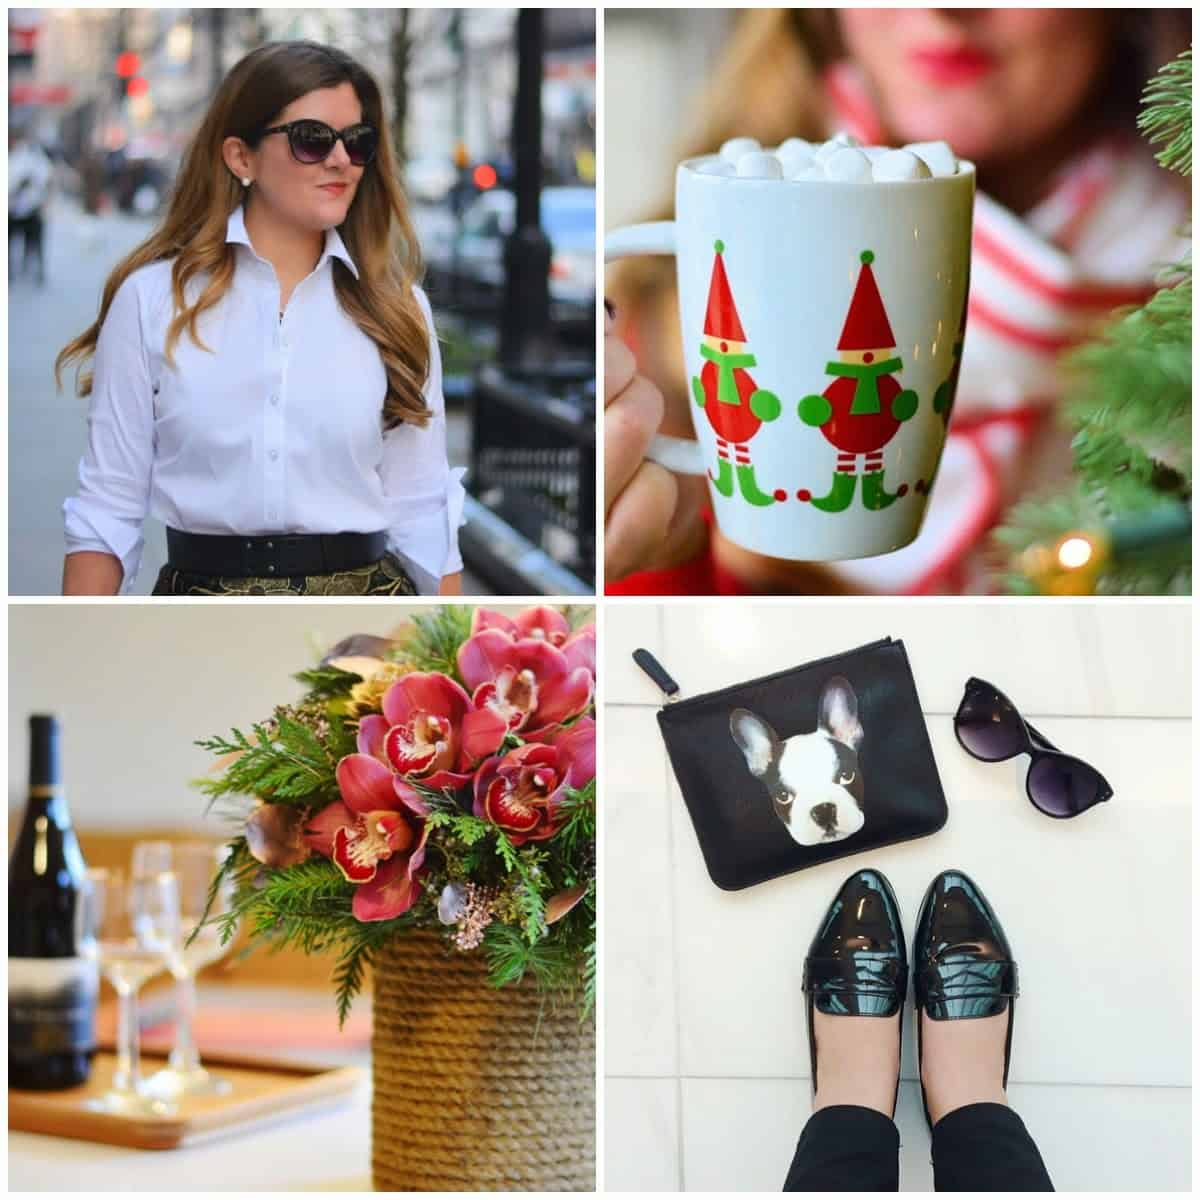 Life Lately 400 Nordstrom Giveaway A Lily Love Affair